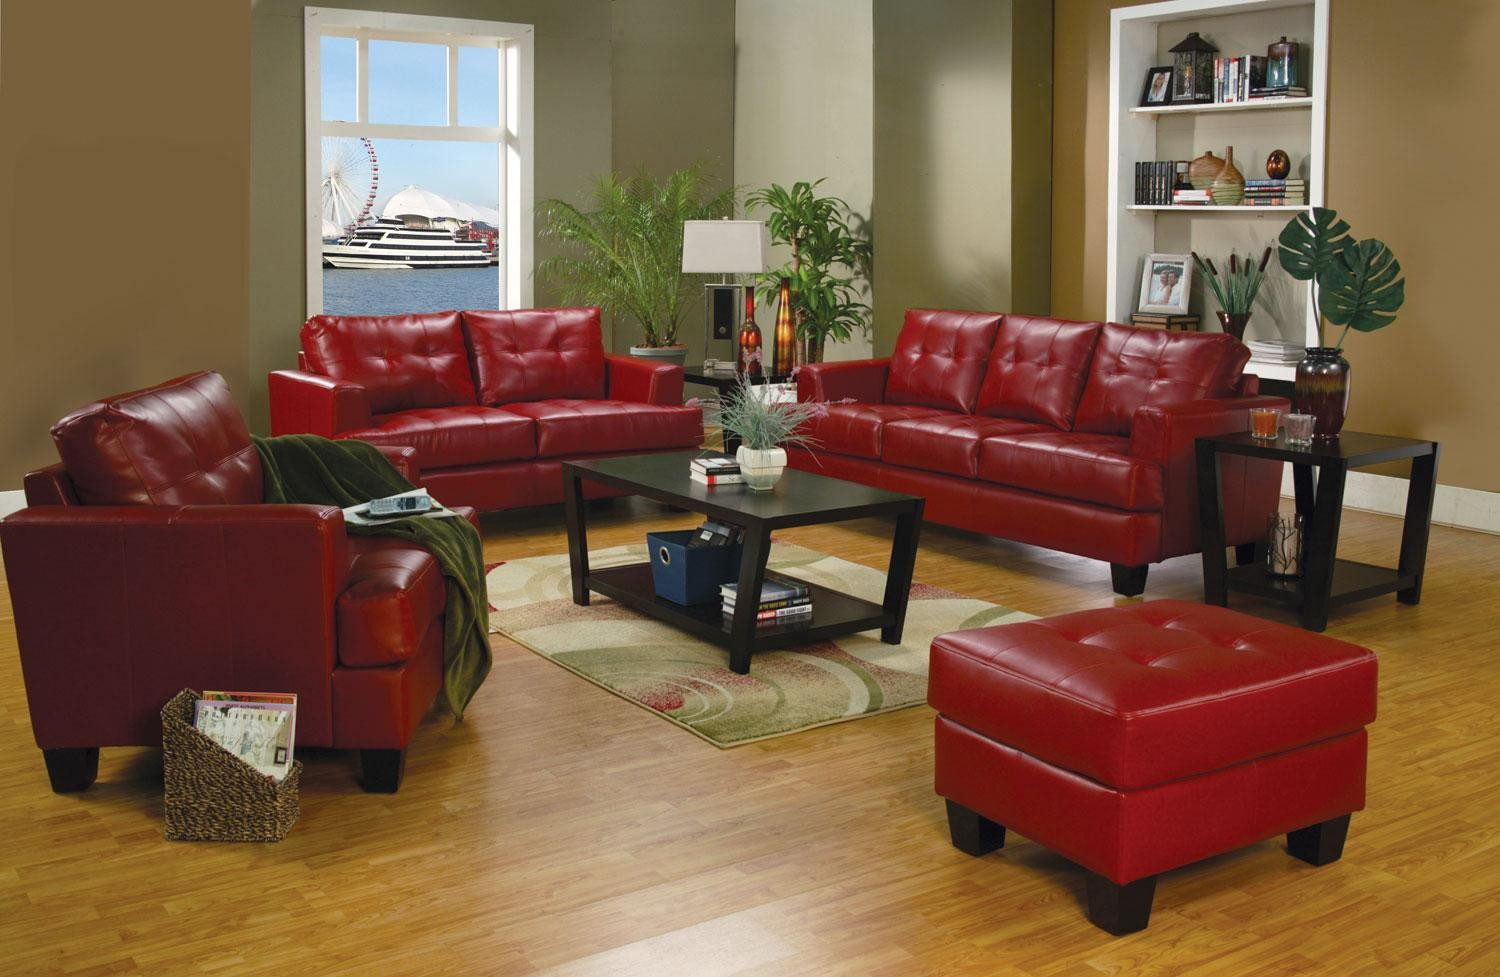 Samuel red leather living room set 501831 from coaster for Red living room furniture